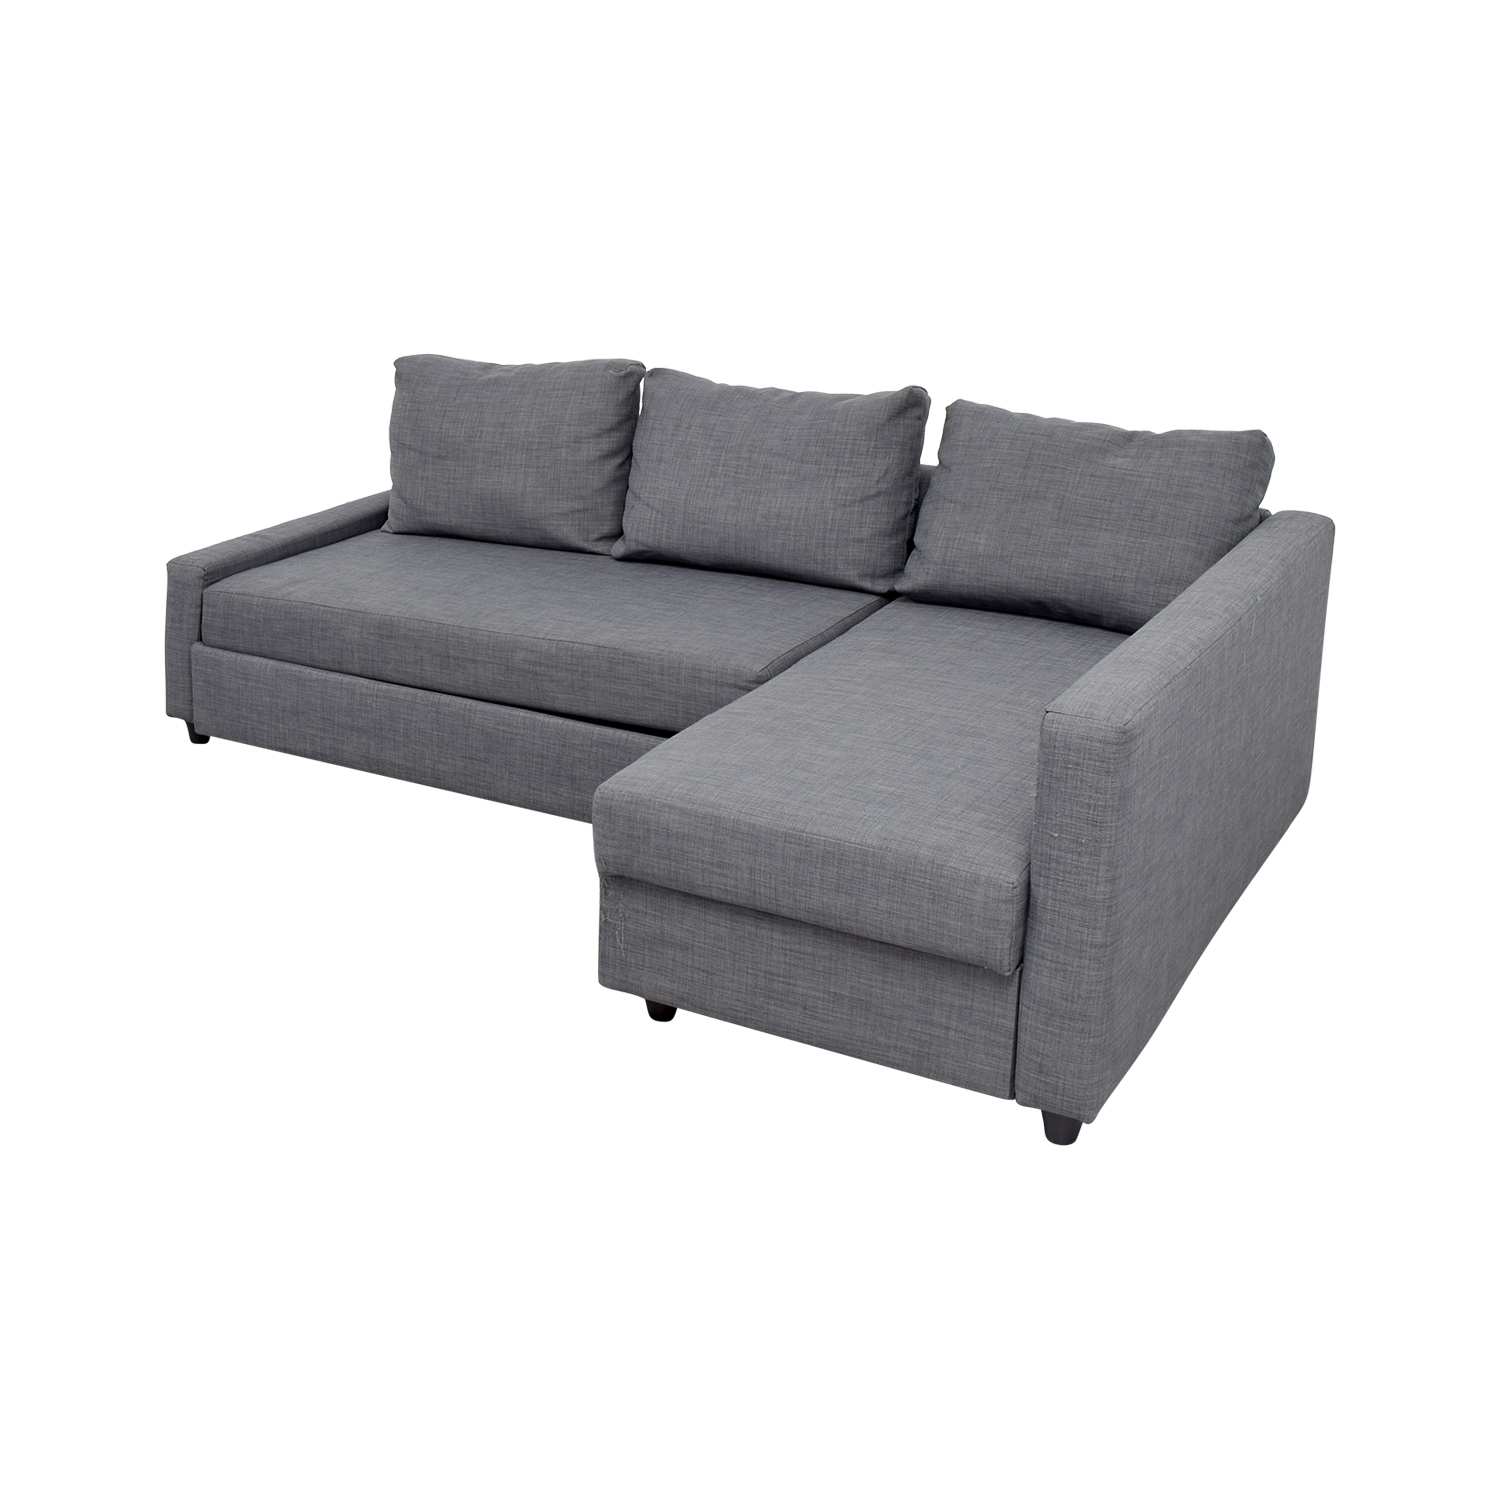 41 off ikea ikea grey sleeper chaise sectional sofas for Ikea gray sofa